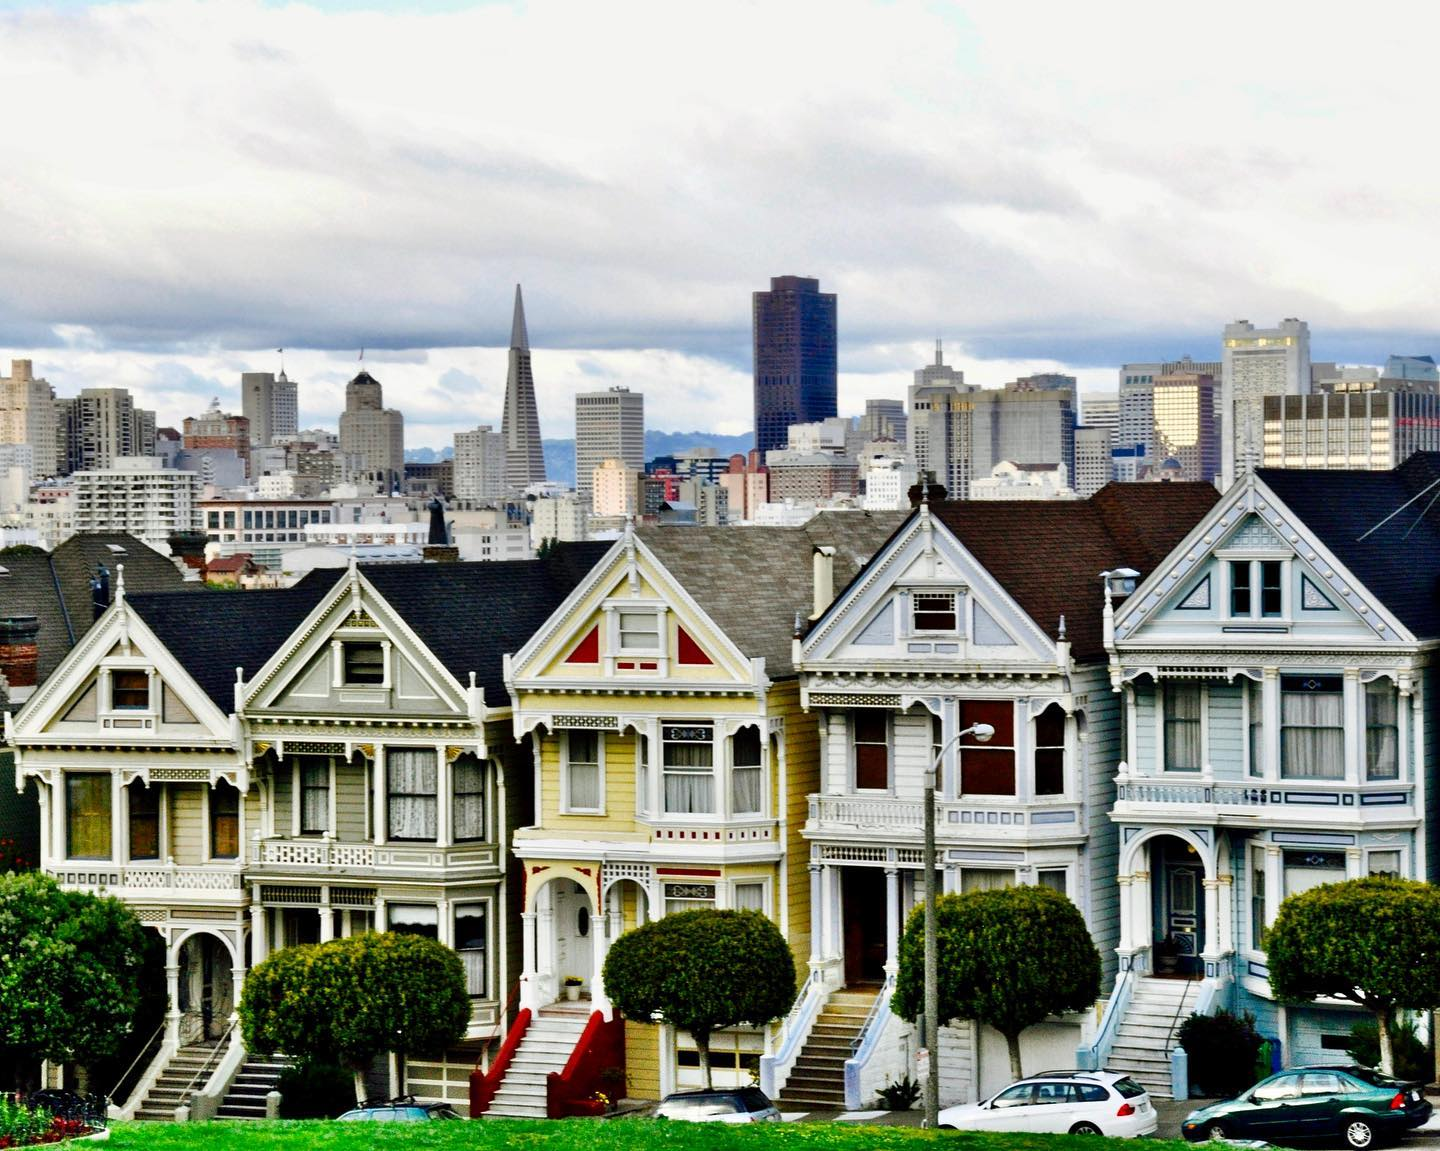 "Painted Ladies, San Francisco, California Victorian houses on Steiner Street, opposite Alamo Square. Built between 1892 and 1896 and the ""Ladies"" still looking good. #usatravels #california #californiadreaming #californialove #sanfrancisco #sanfranciscolife #paintedladies #steinerstreet #alamosquare #citylife #cityphotography #travelphotography #travelgram #traveltheusa #traveltheus #cityview #travelgram #travelblog #travelblogger #instatravel #instatraveling"